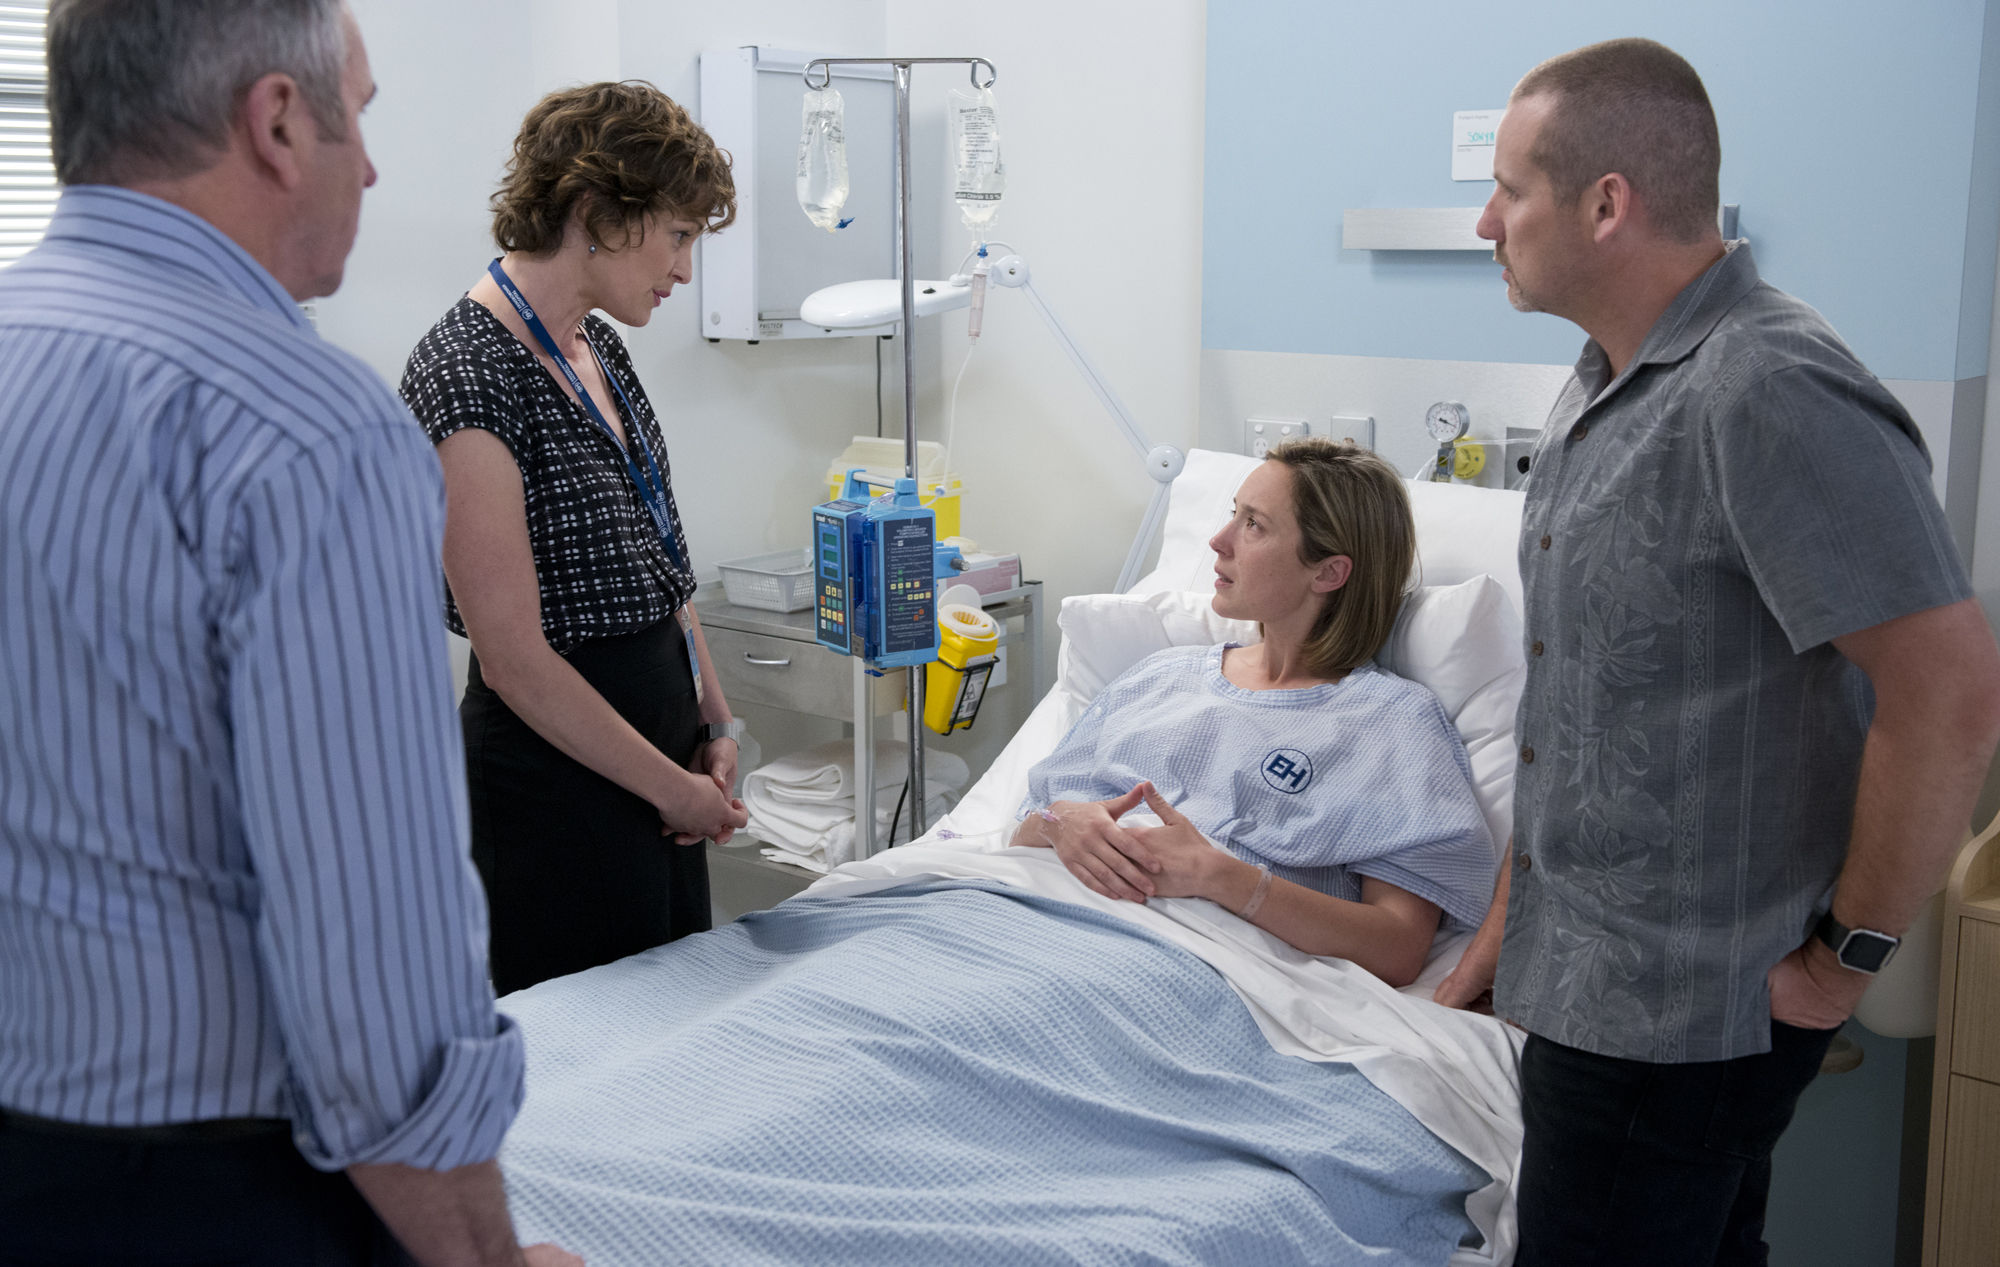 Toadie is struggling with Sonya's diagnosis